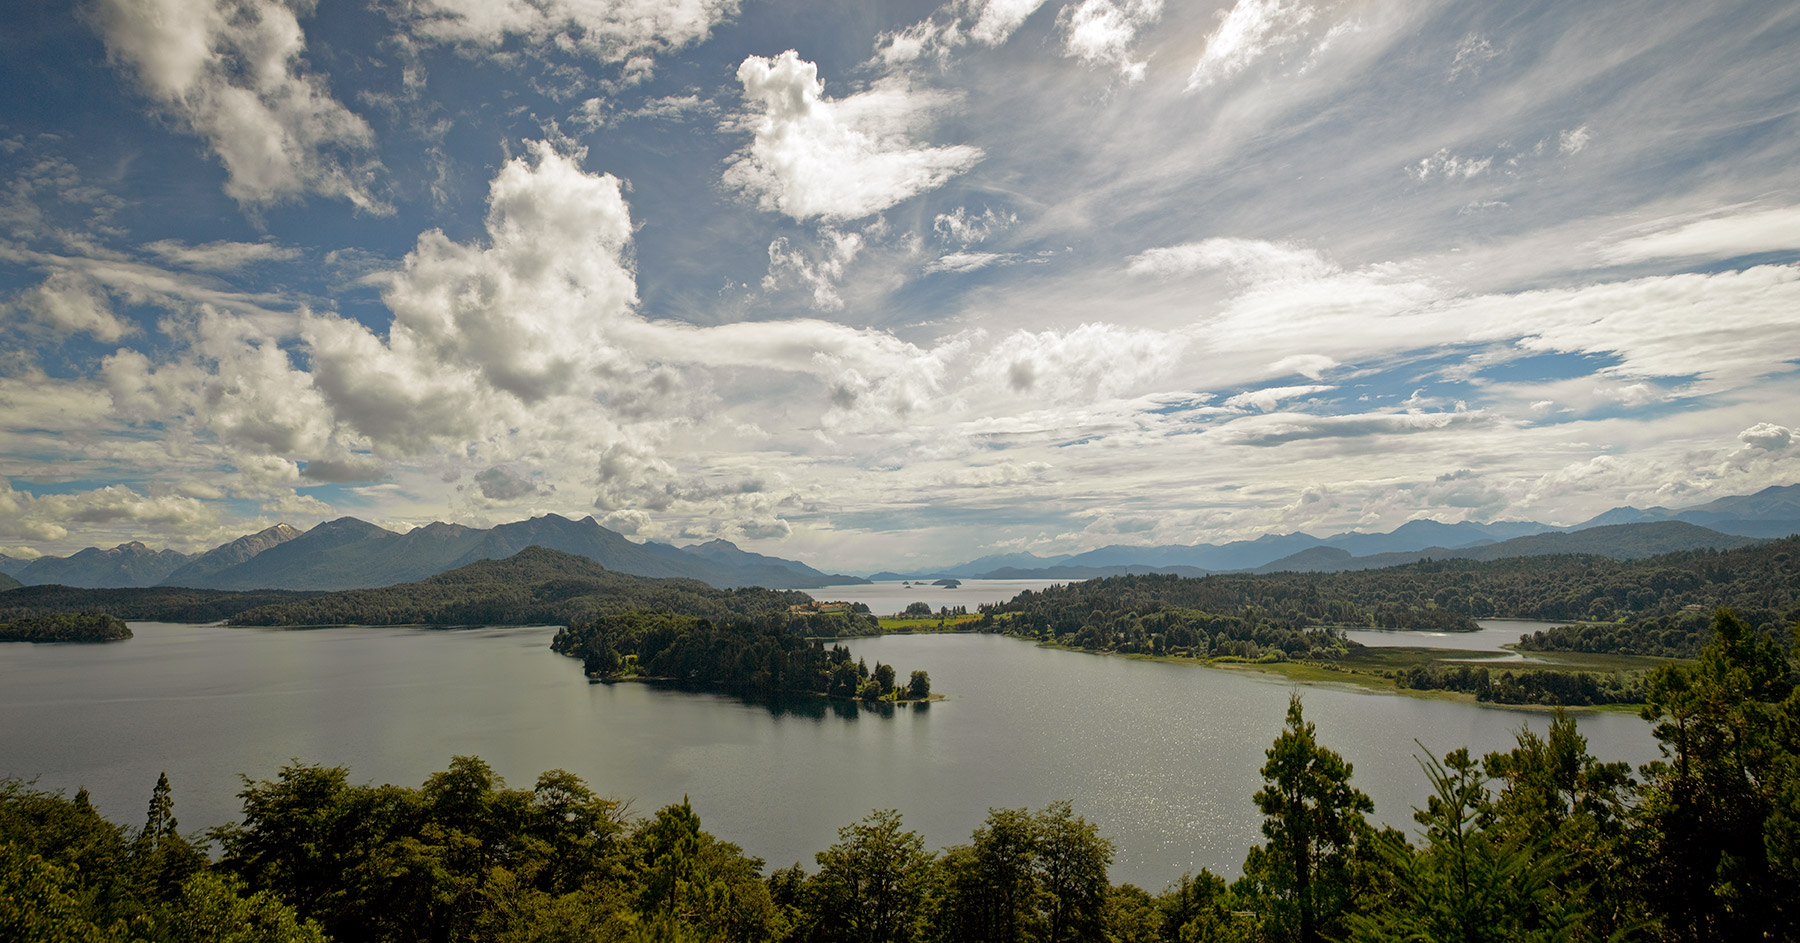 0703_argentina_lakedistrict_0486a